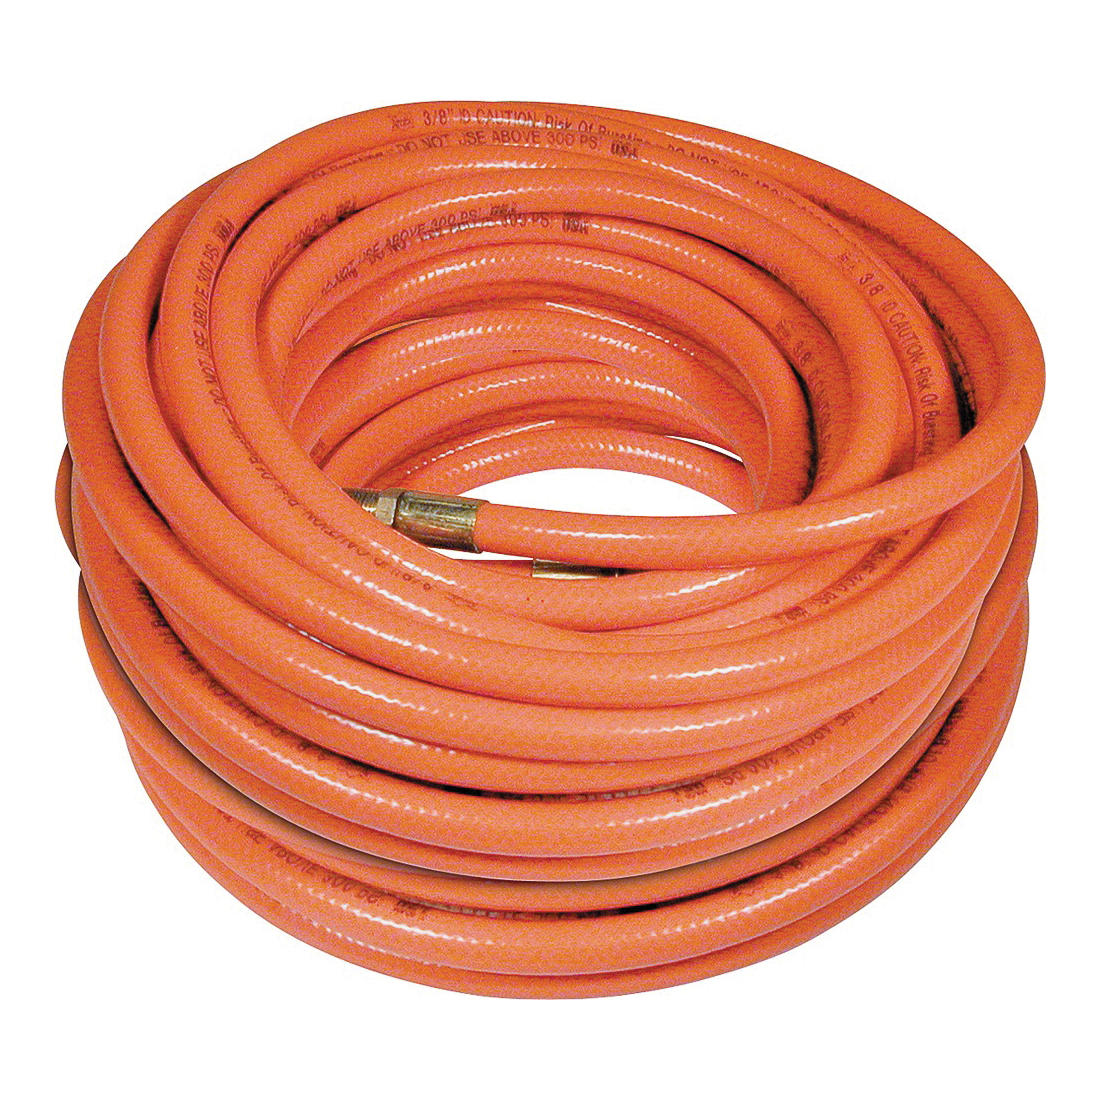 Picture of Amflo 576-100A-5 Air Hose, 3/8 in OD, 100 ft L, MNPT, 300 psi Pressure, PVC, Orange